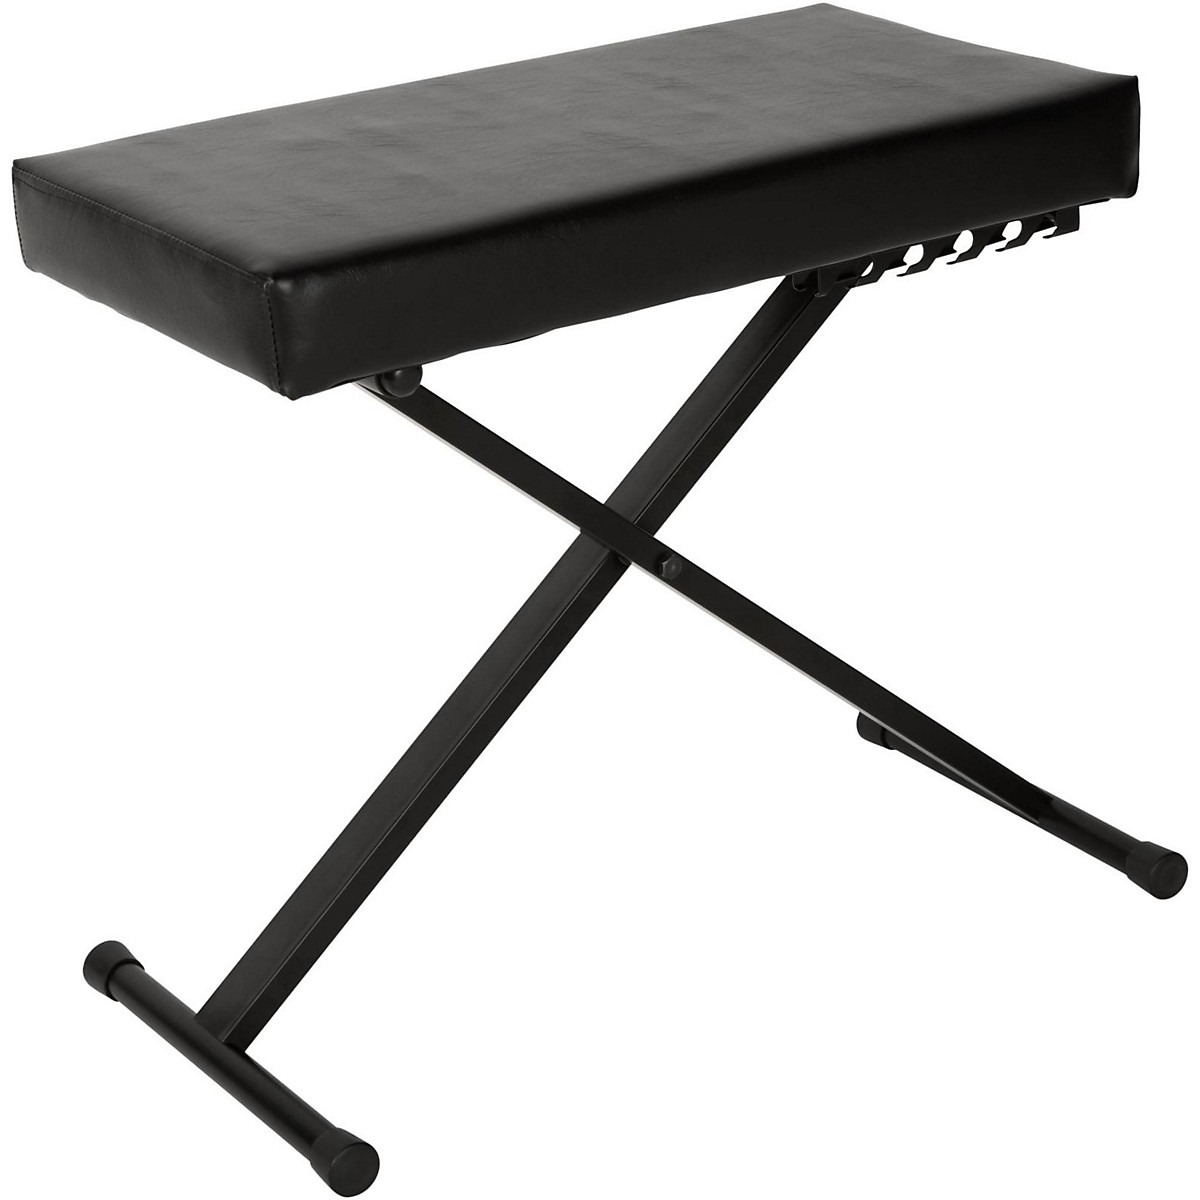 Musician's Gear KS-515-MG Deluxe Keyboard Bench